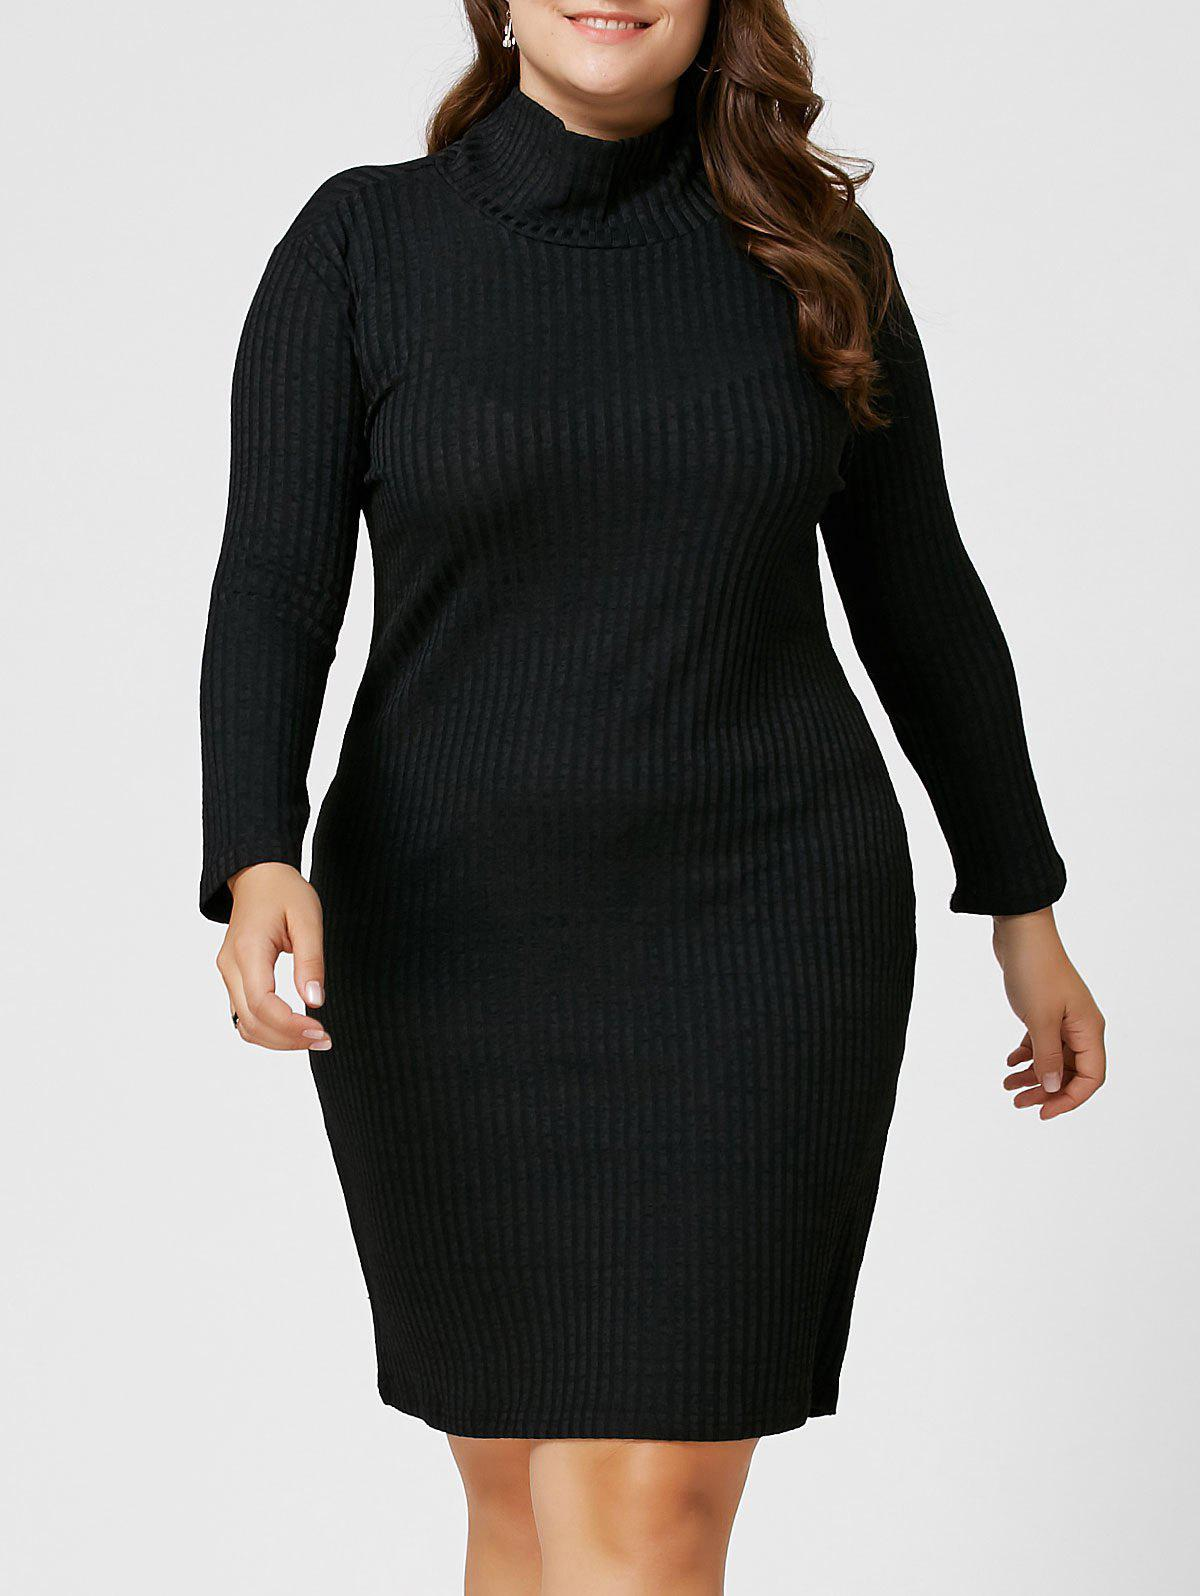 Plus Size Sheath Turtleneck Ribbed Sweater DressWOMEN<br><br>Size: 6XL; Color: BLACK; Style: Club; Material: Cotton Blend,Polyester; Silhouette: Bodycon; Dresses Length: Knee-Length; Neckline: Turtleneck; Sleeve Length: 3/4 Length Sleeves; Pattern Type: Solid Color; Elasticity: Elastic; With Belt: No; Season: Fall,Winter; Weight: 0.3500kg; Package Contents: 1 x Dress;